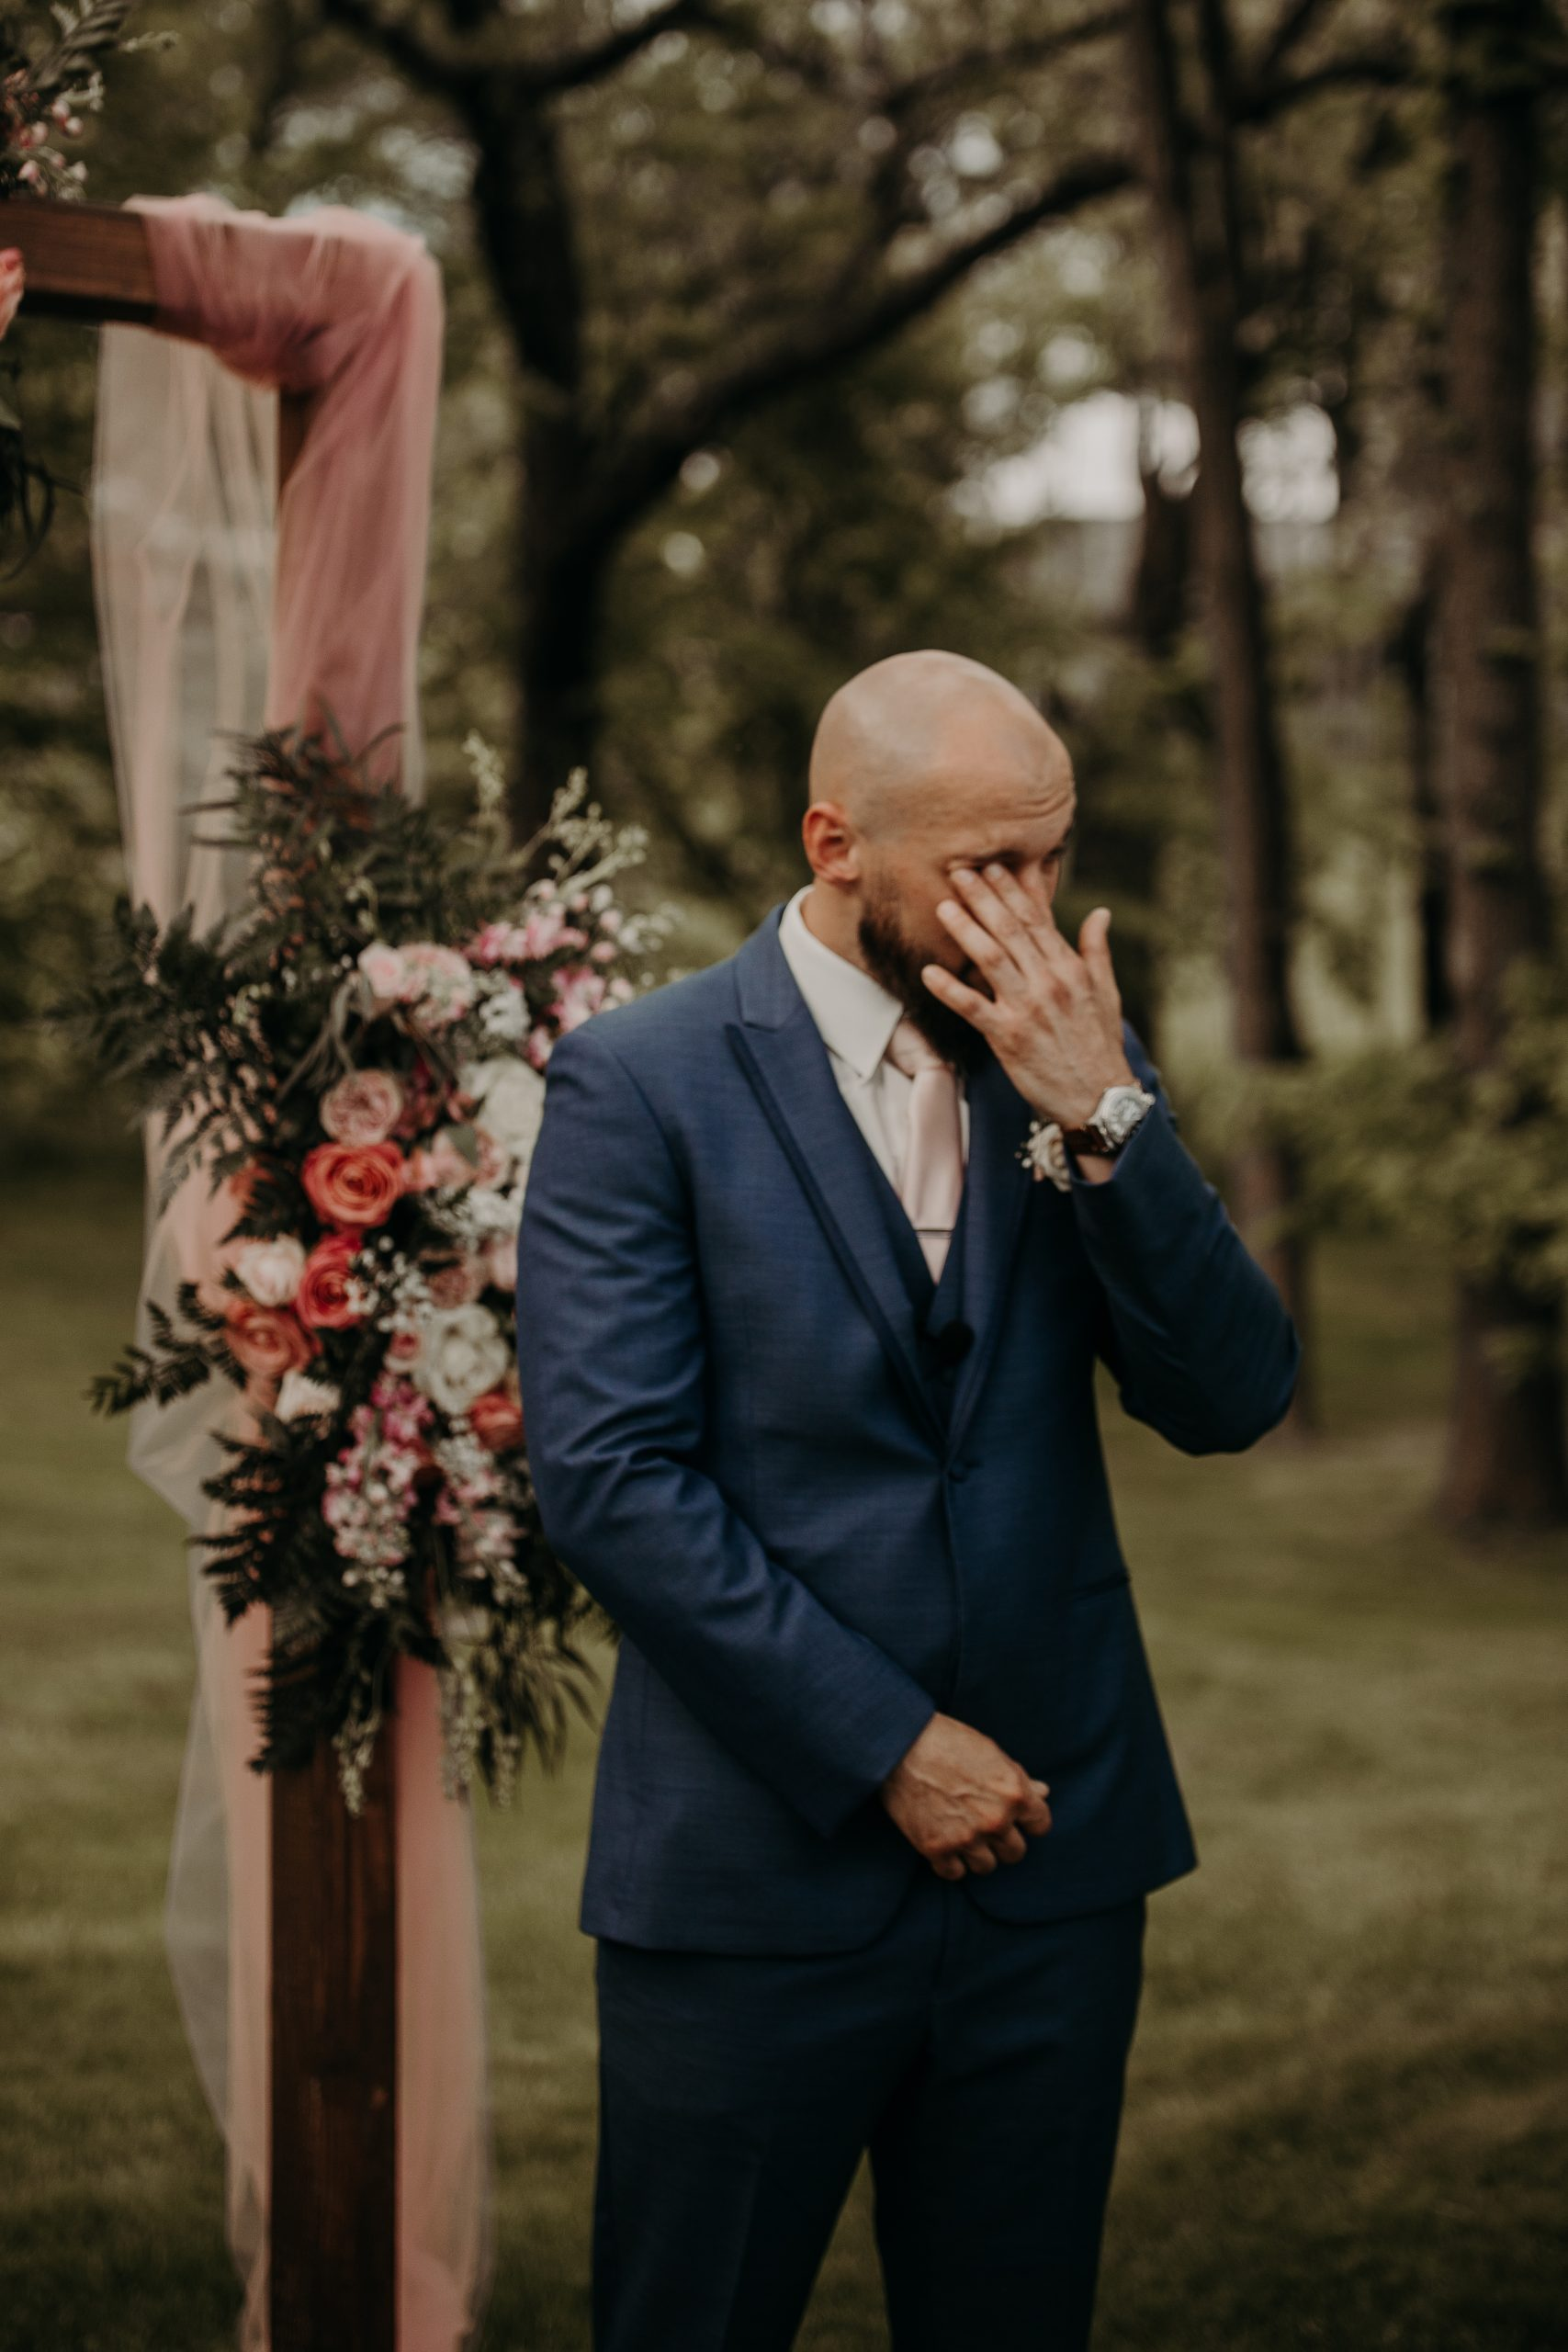 Richard is overcome with emotion as his bride makes her way down the isle. Sporting a blue suite and a pastel pink tie, the groom is ready to say I do. Christine and Richard wed on the Chestnut Hill Villa grounds on May of 2019. This organic ethereal styled wedding was captured by Garnet Dahlia Photography and featured on Dream Weddings.